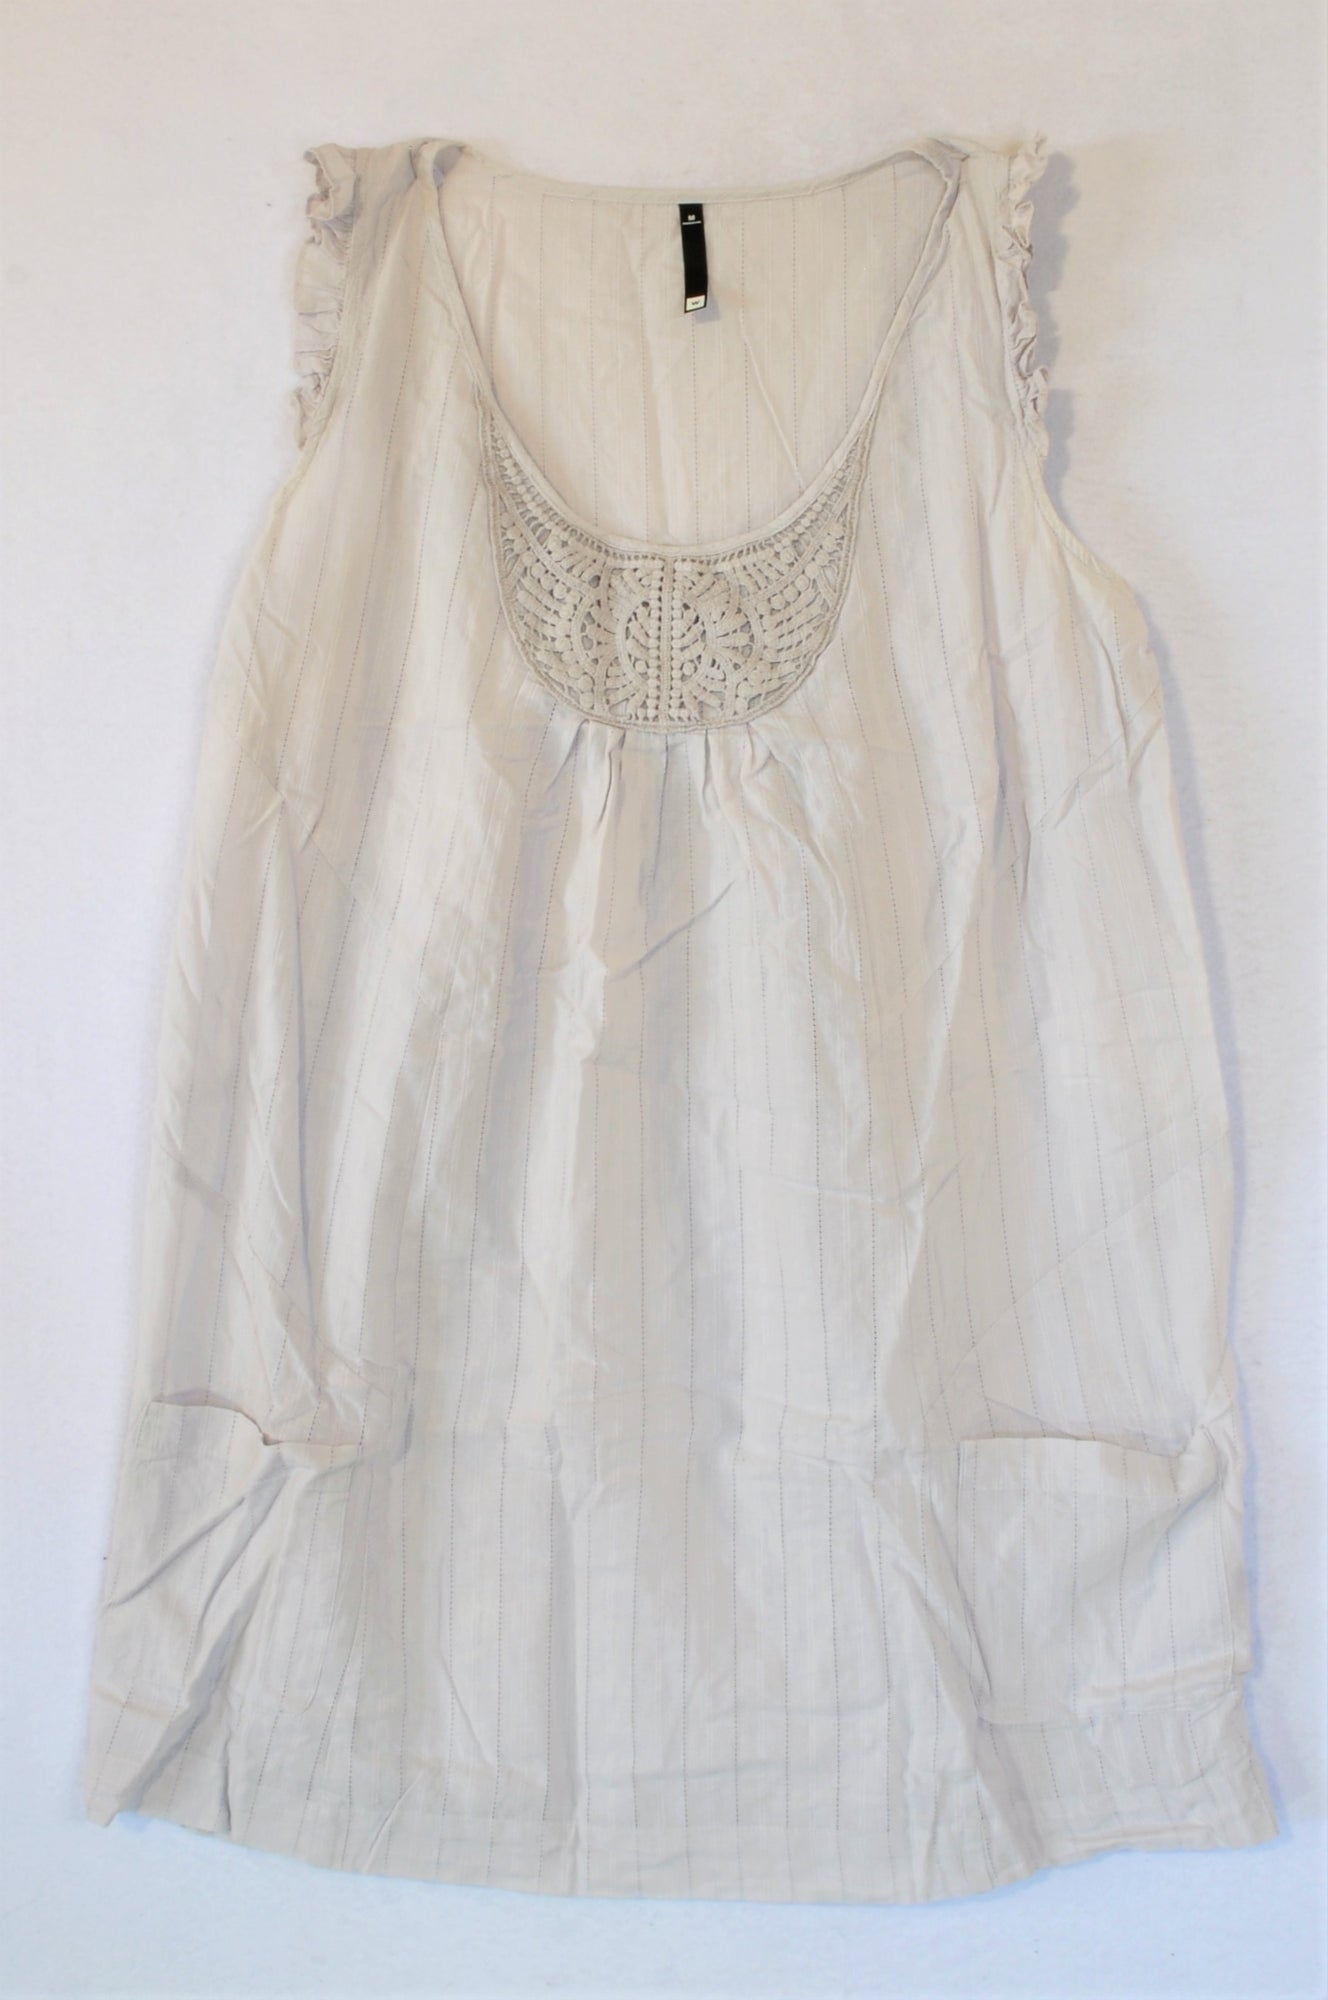 Woolworths Light Grey Dress Women Size M